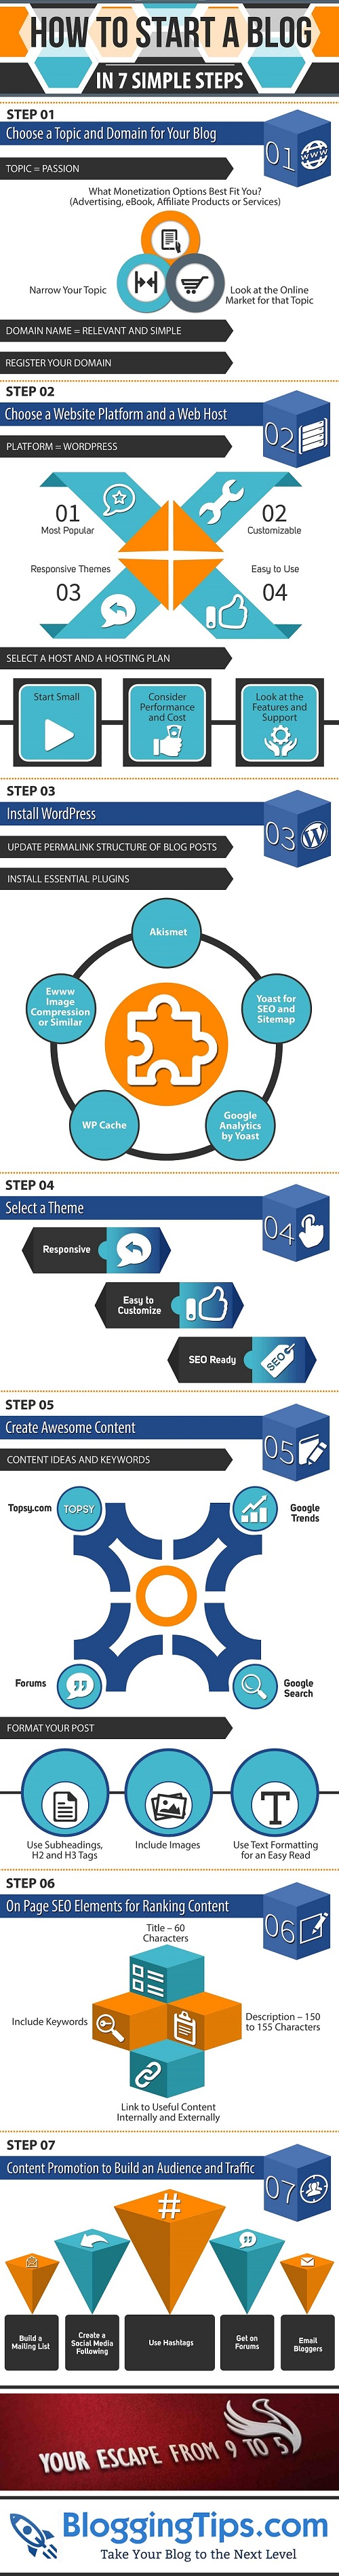 Creating a Blog Infographic – DesignCoral